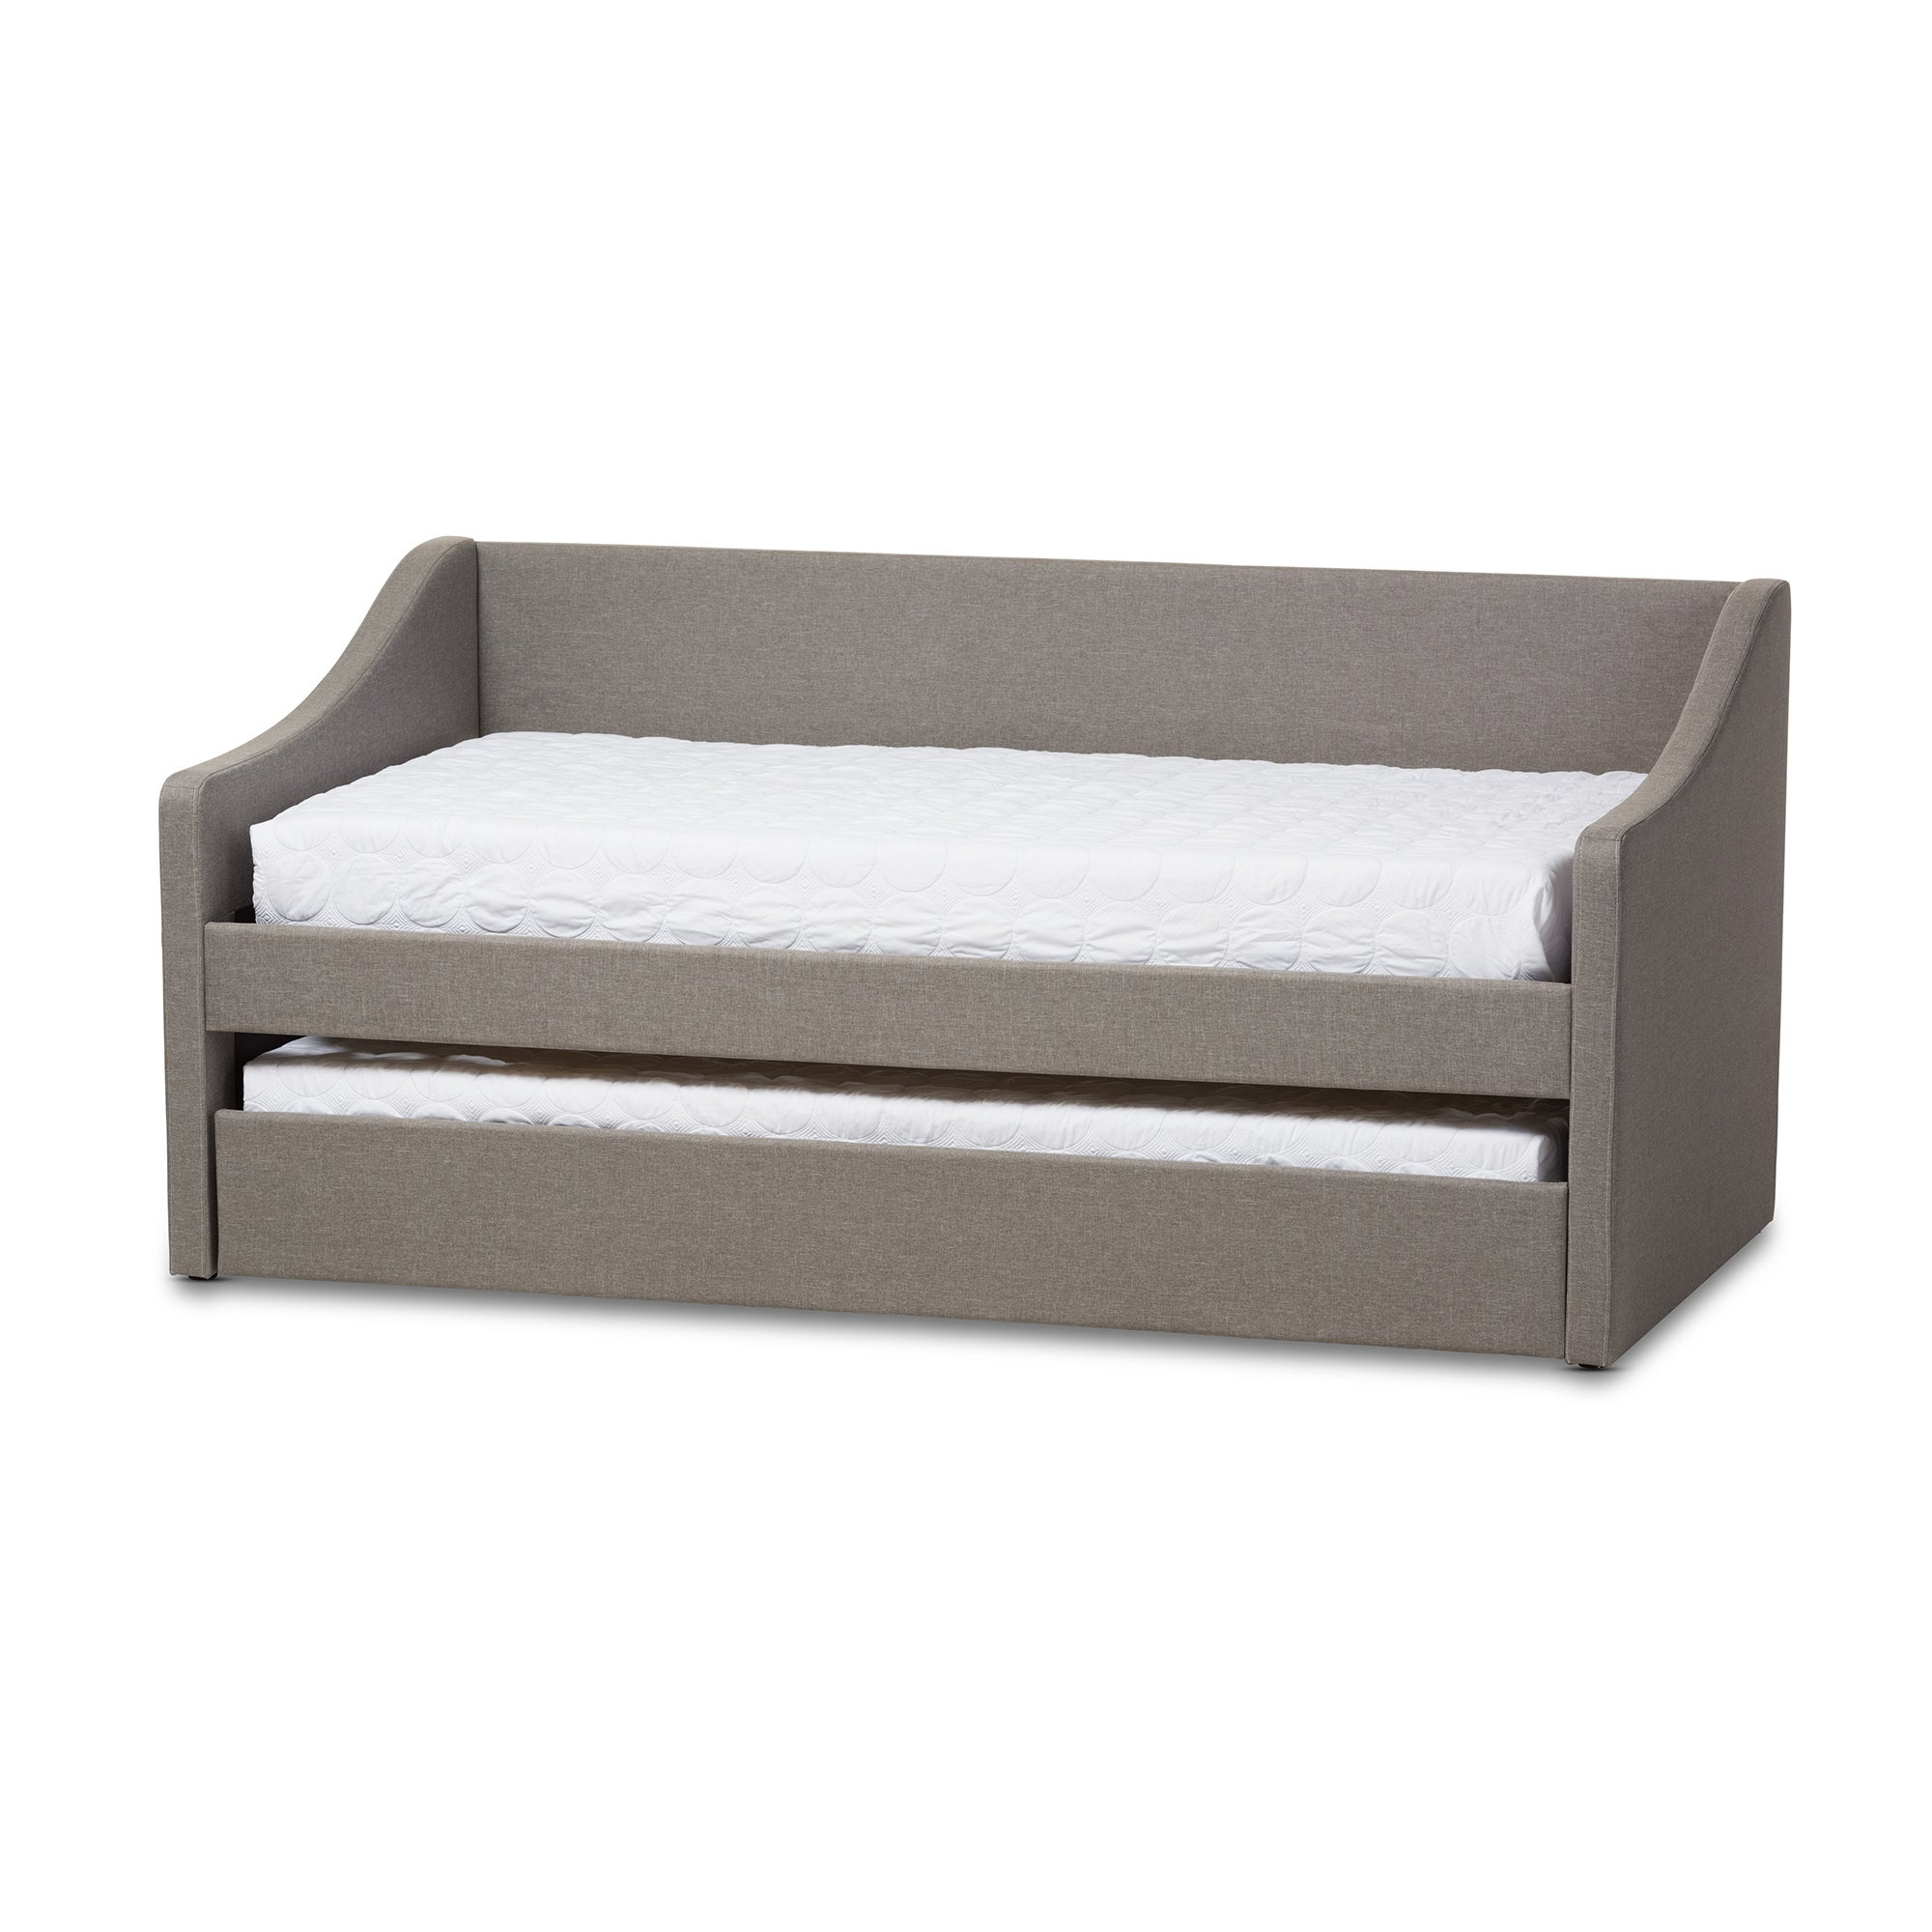 bookcase house holland with bed louvre trundle day number youth beds and belmar products b item panels